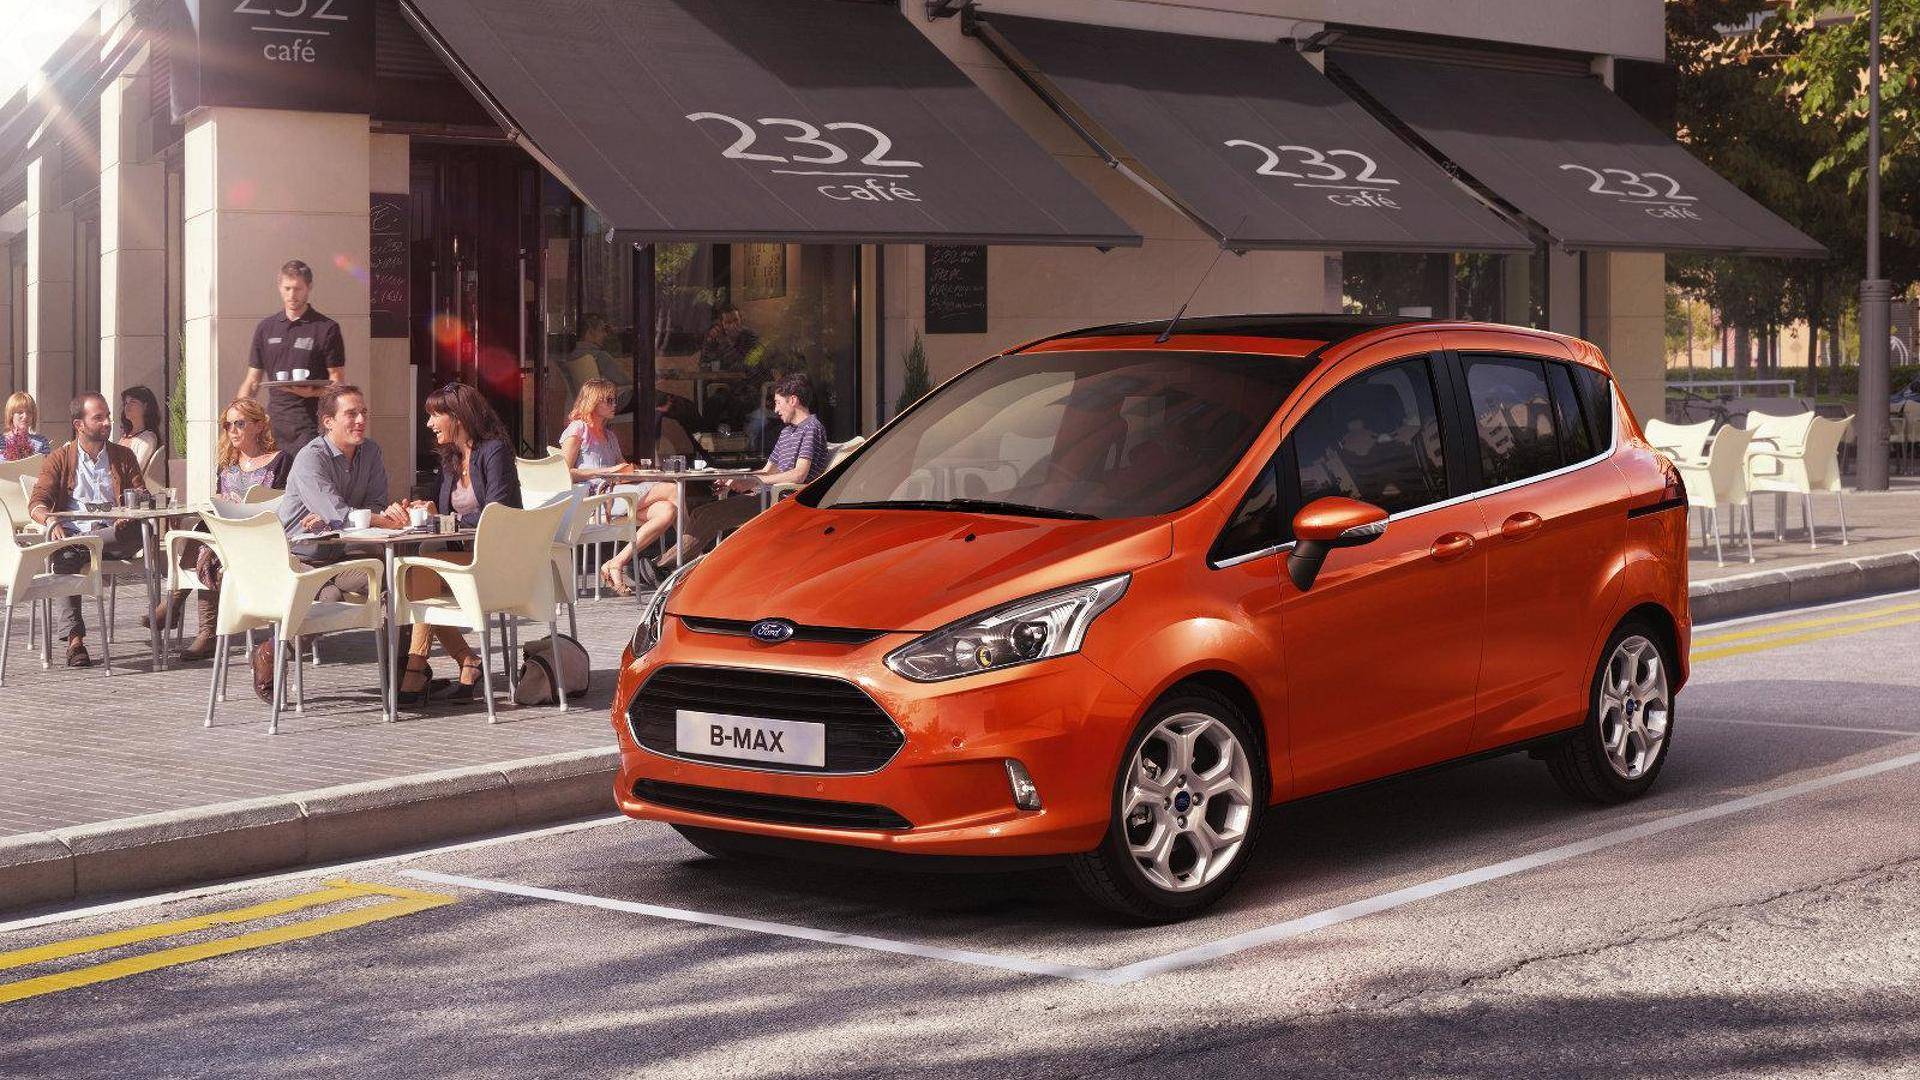 2013 Ford B-Max previewed ahead of Geneva debut